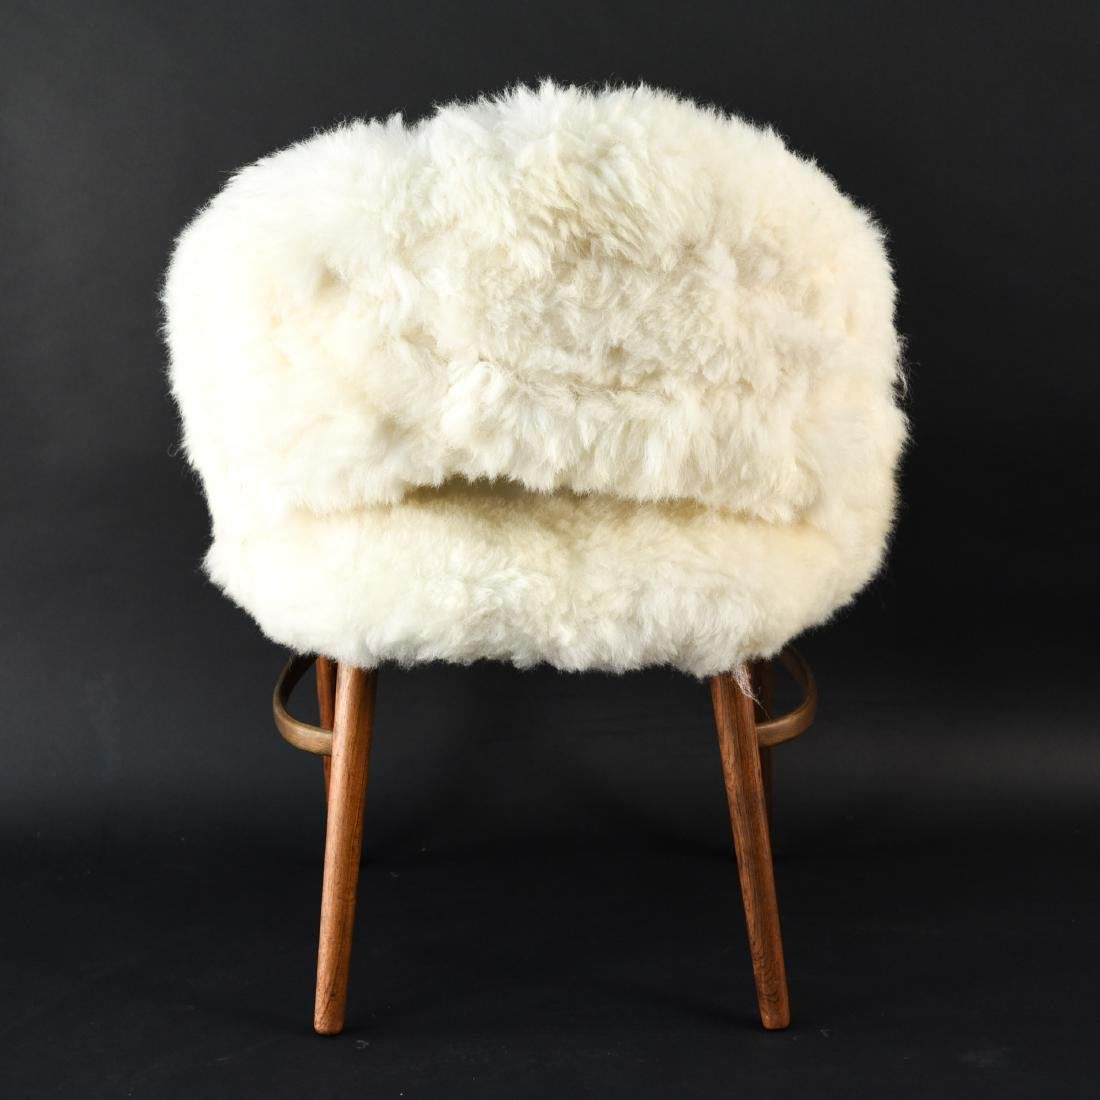 DANISH FRODE HOLM VANITY CHAIR IN LAMBS WOOL - 6